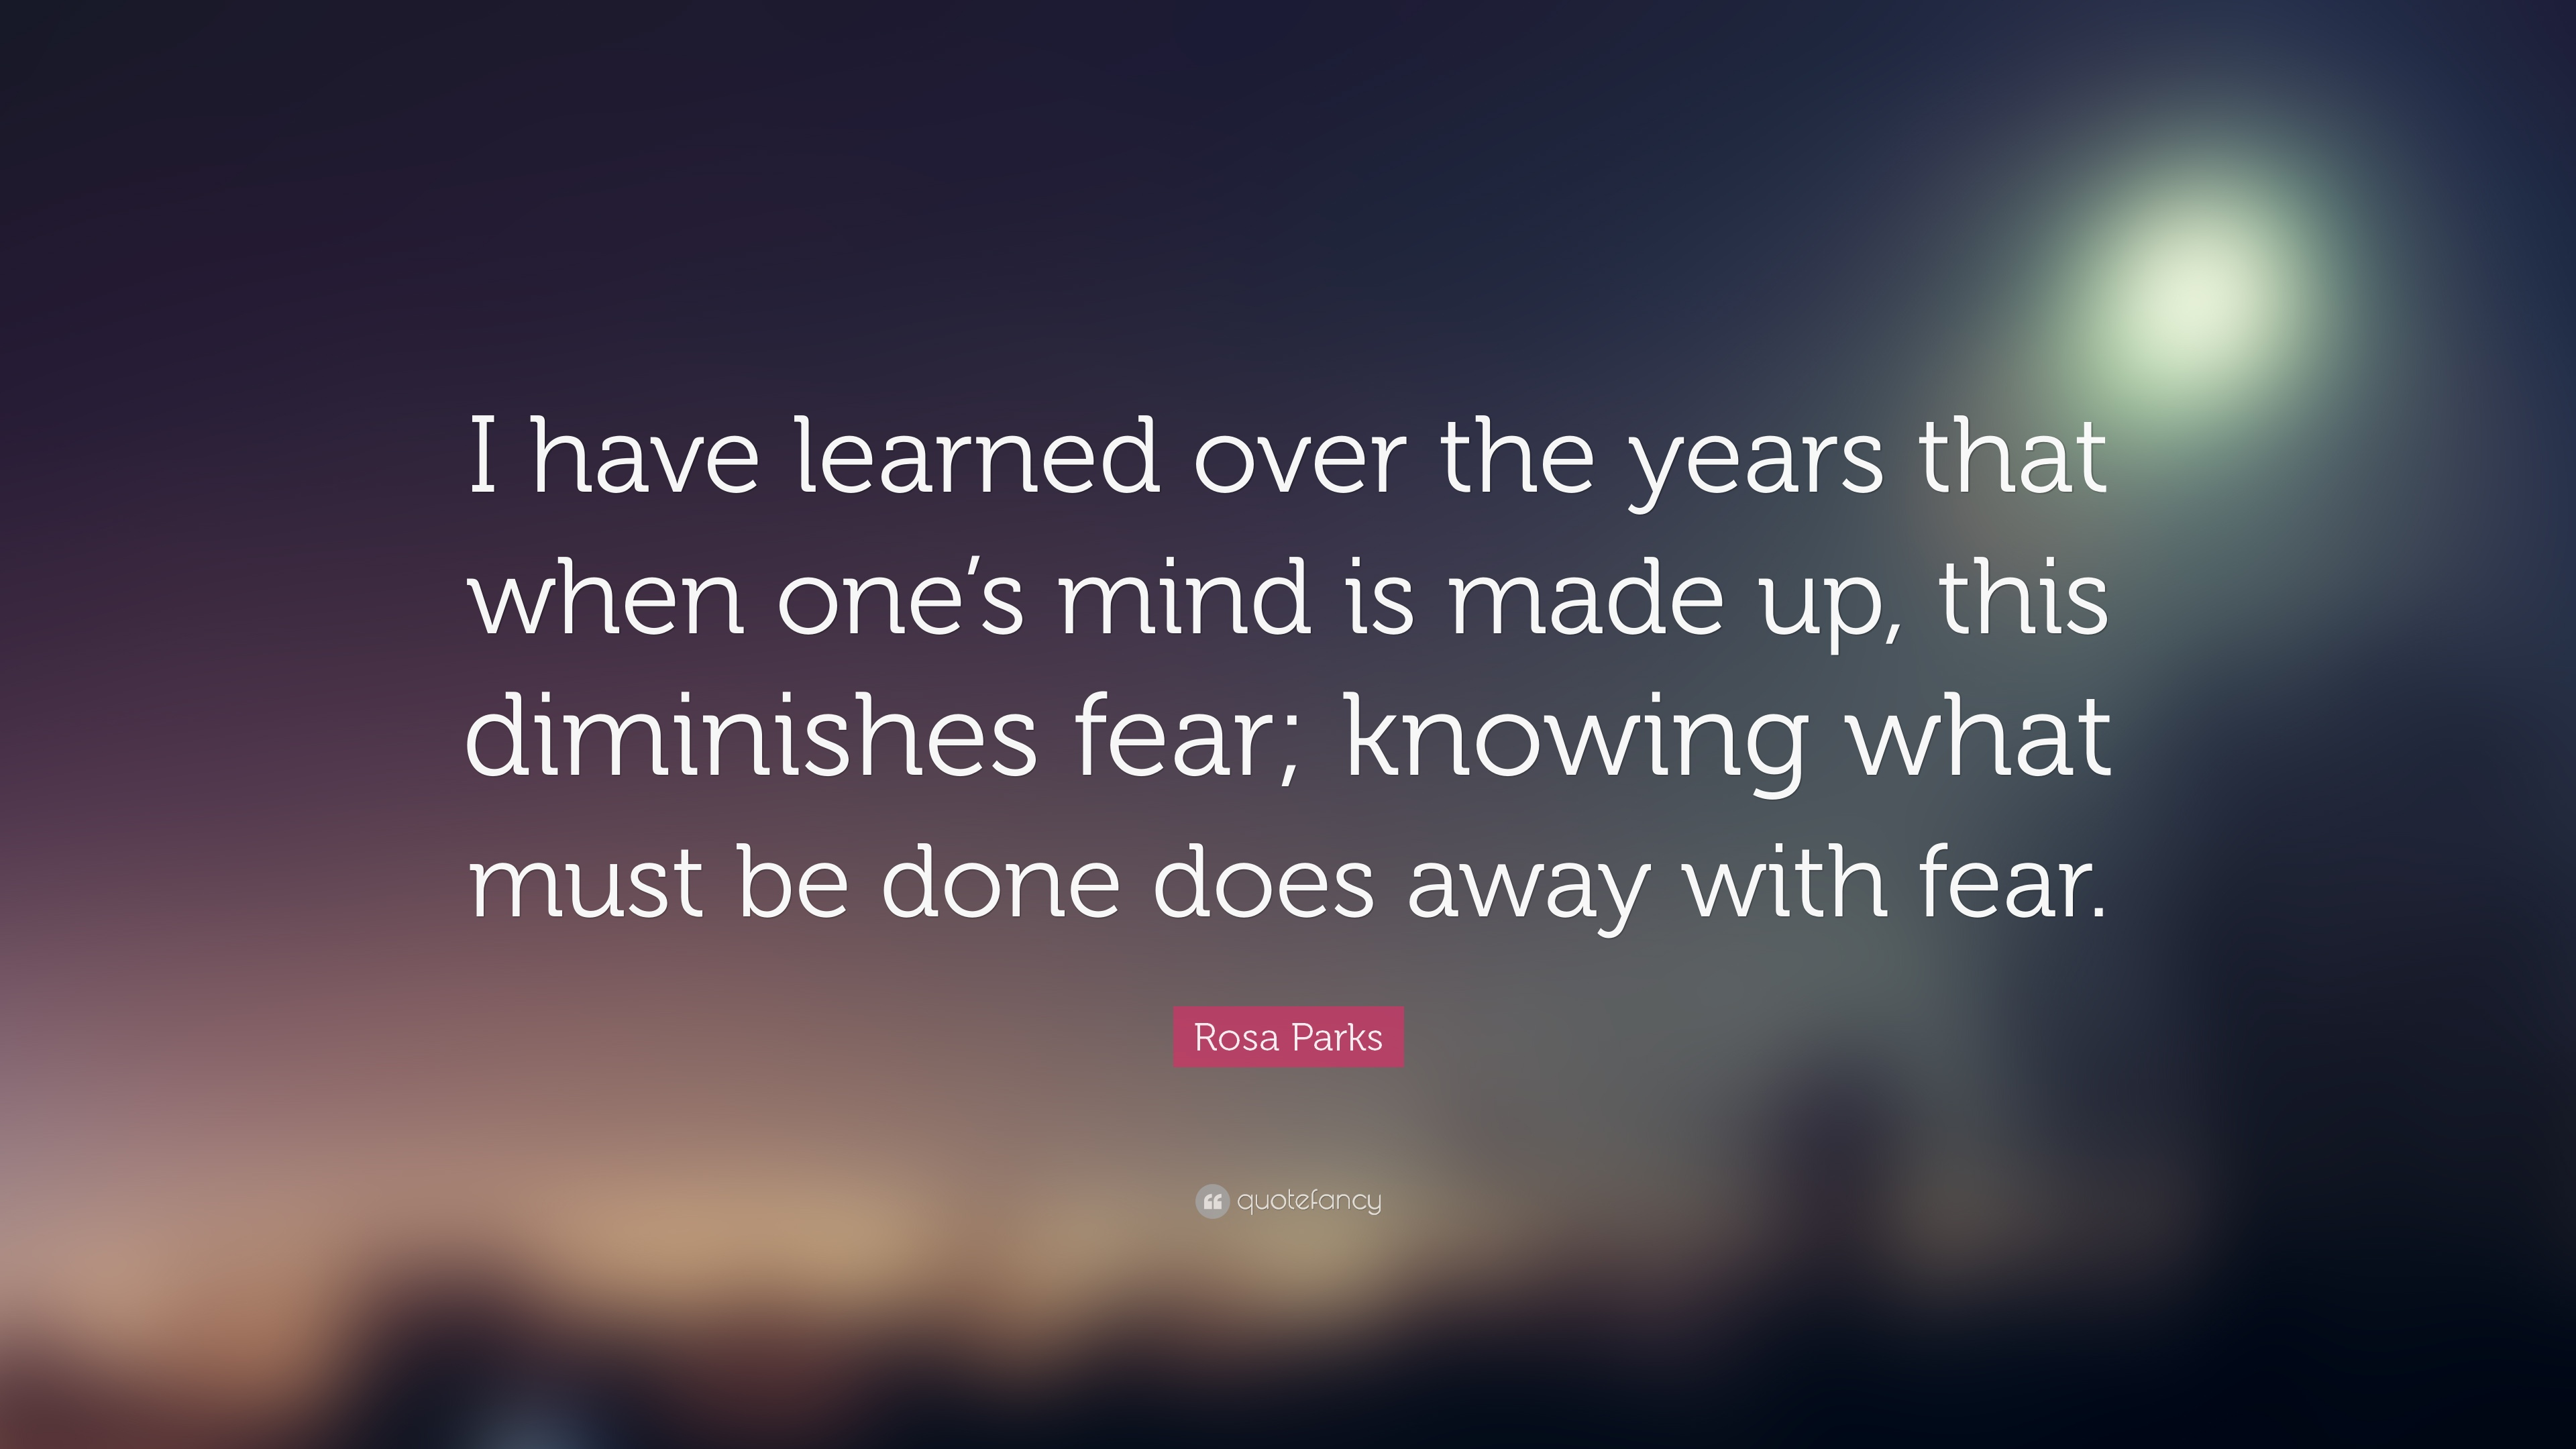 Rosa Parks Quote I have learned over the years that when ones